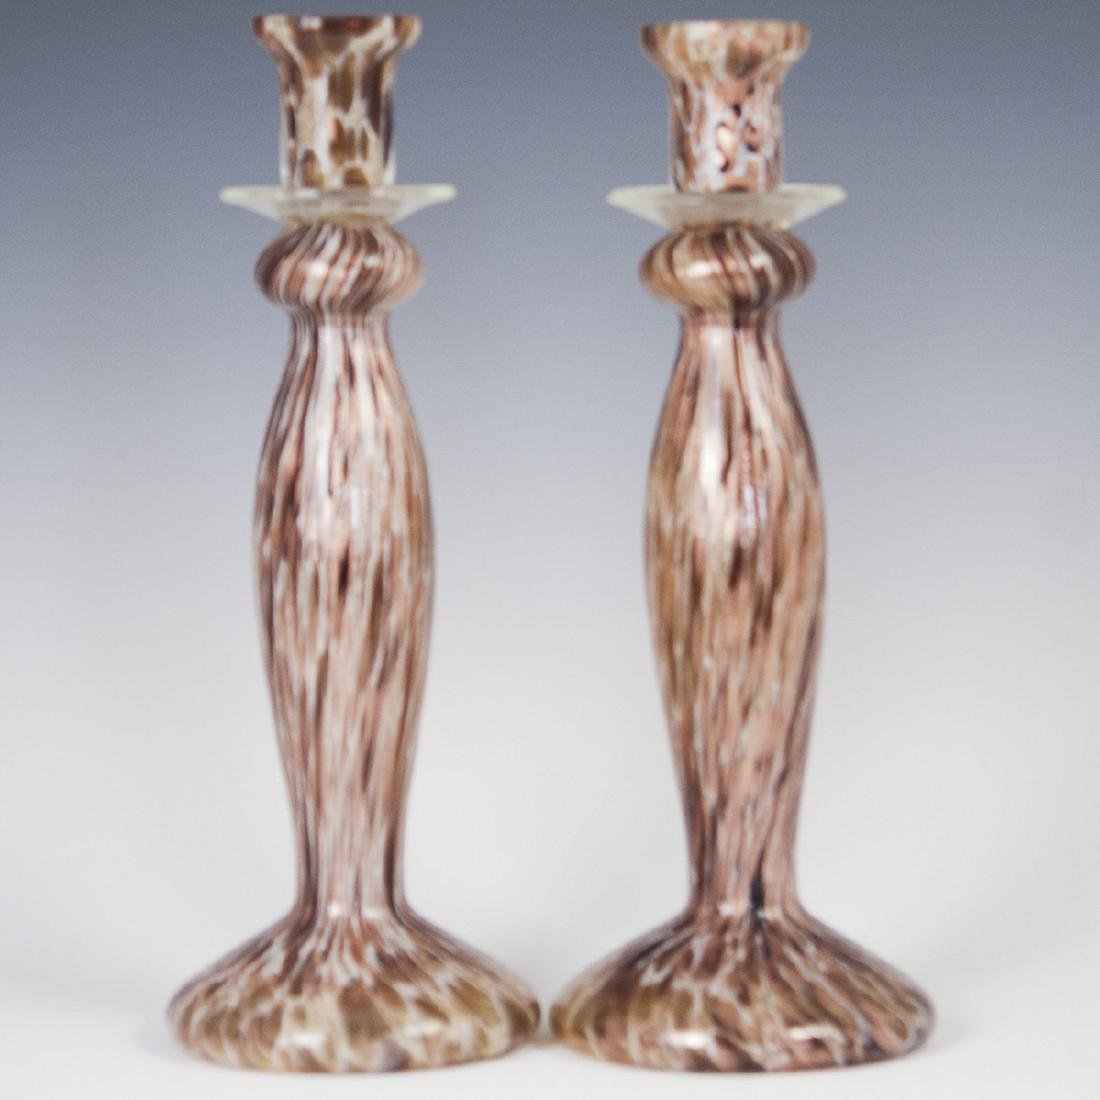 Murano Glass Candlesticks